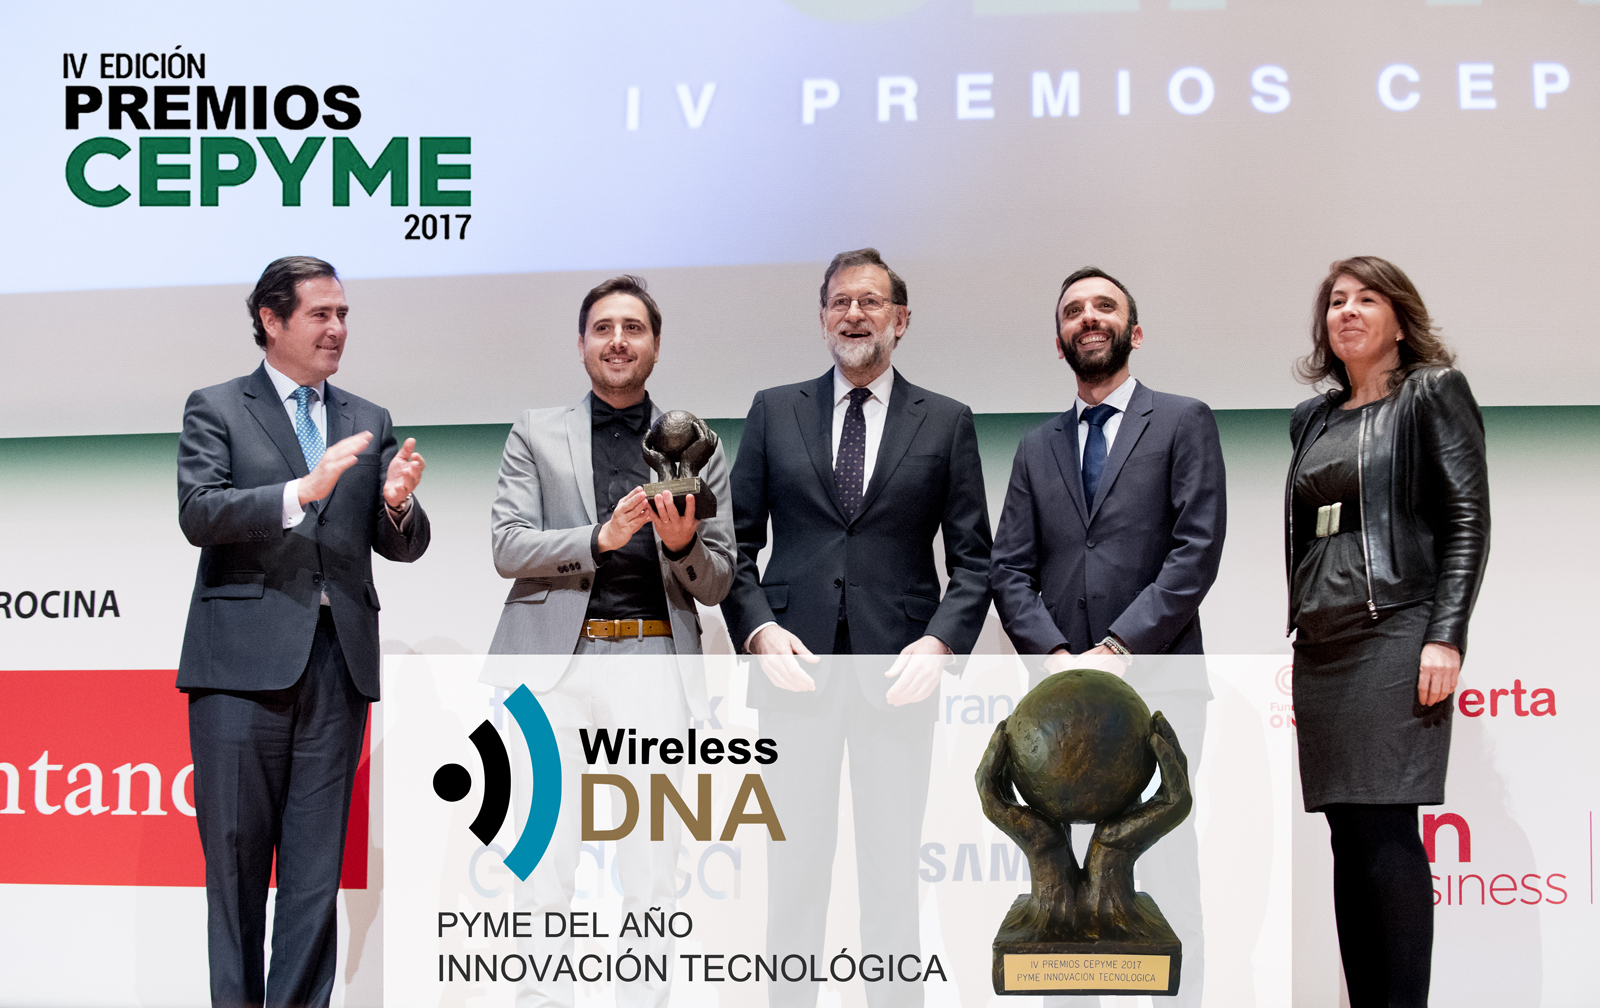 WIRELESS DNA CEPYME 2017 INNOCAVION TECNOLOGICA